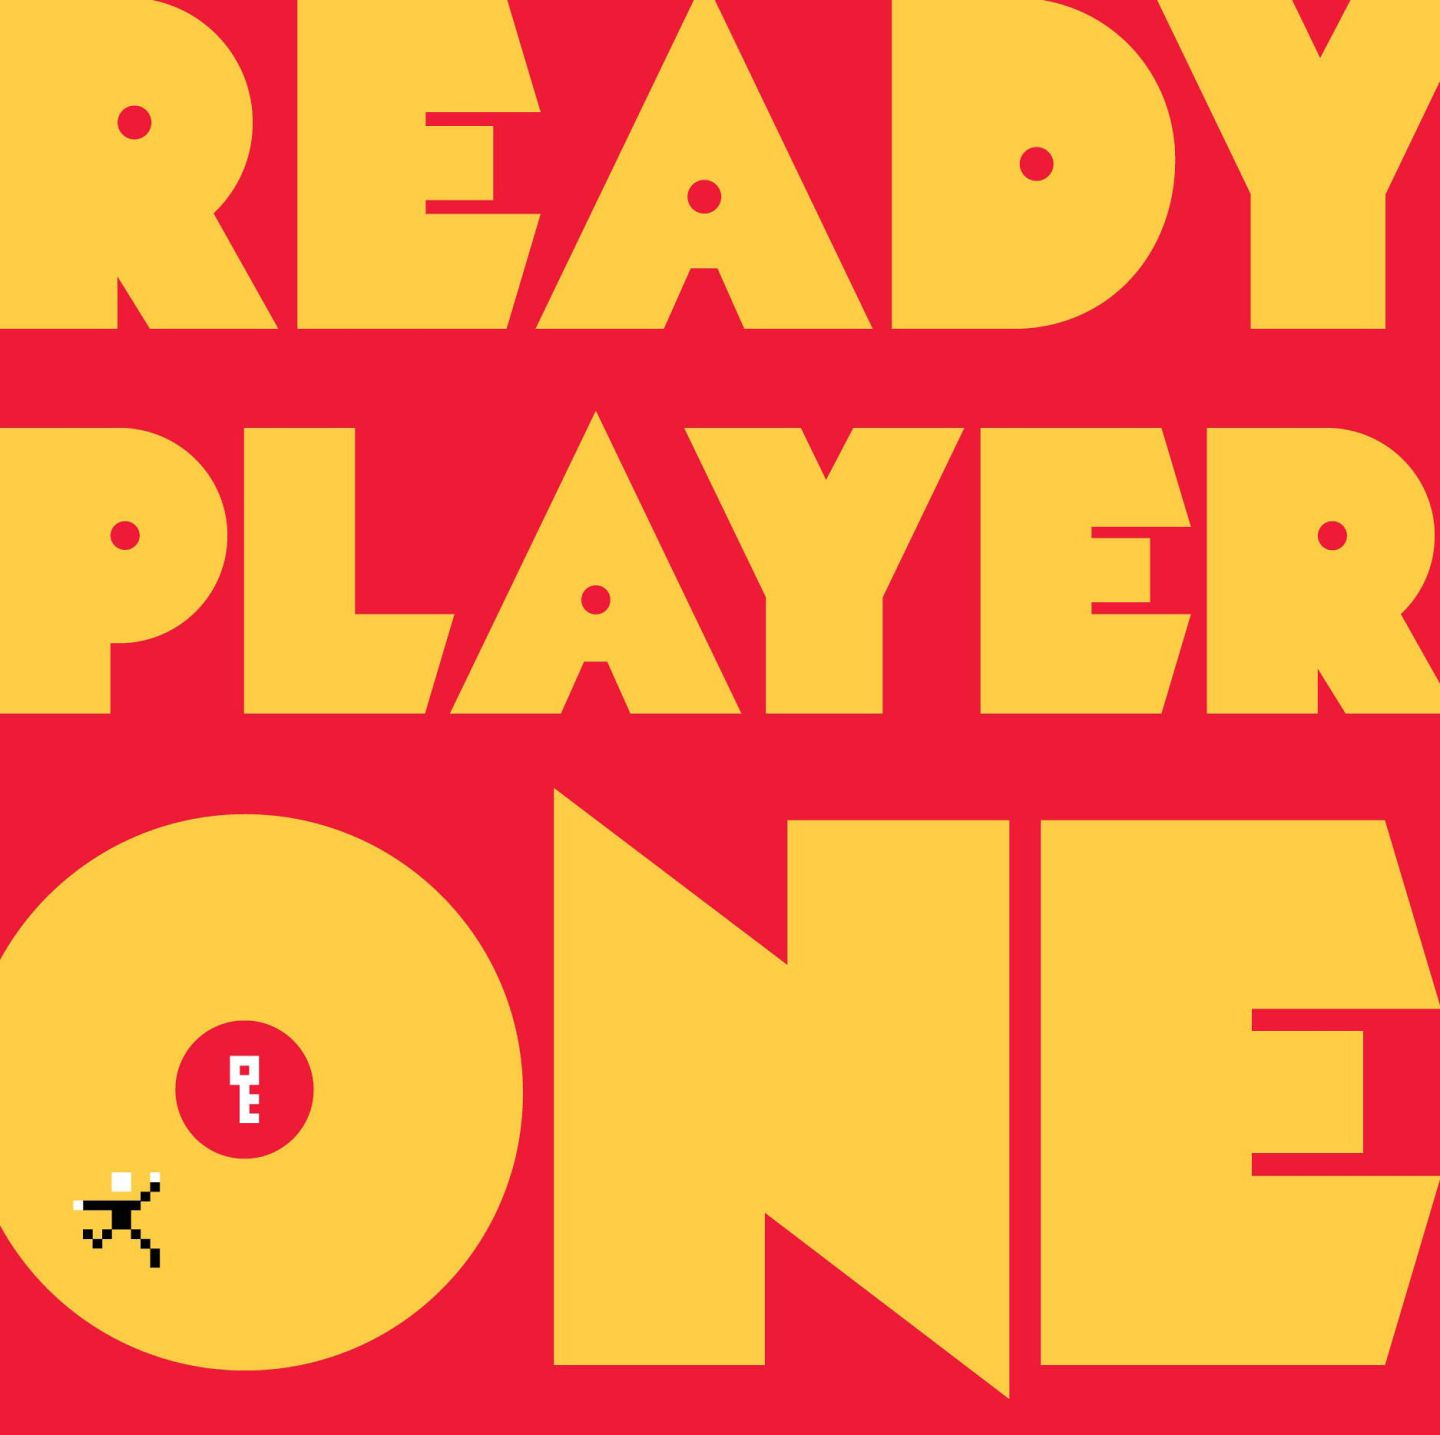 Here's our first look at Spielberg's 'Ready Player One' movie